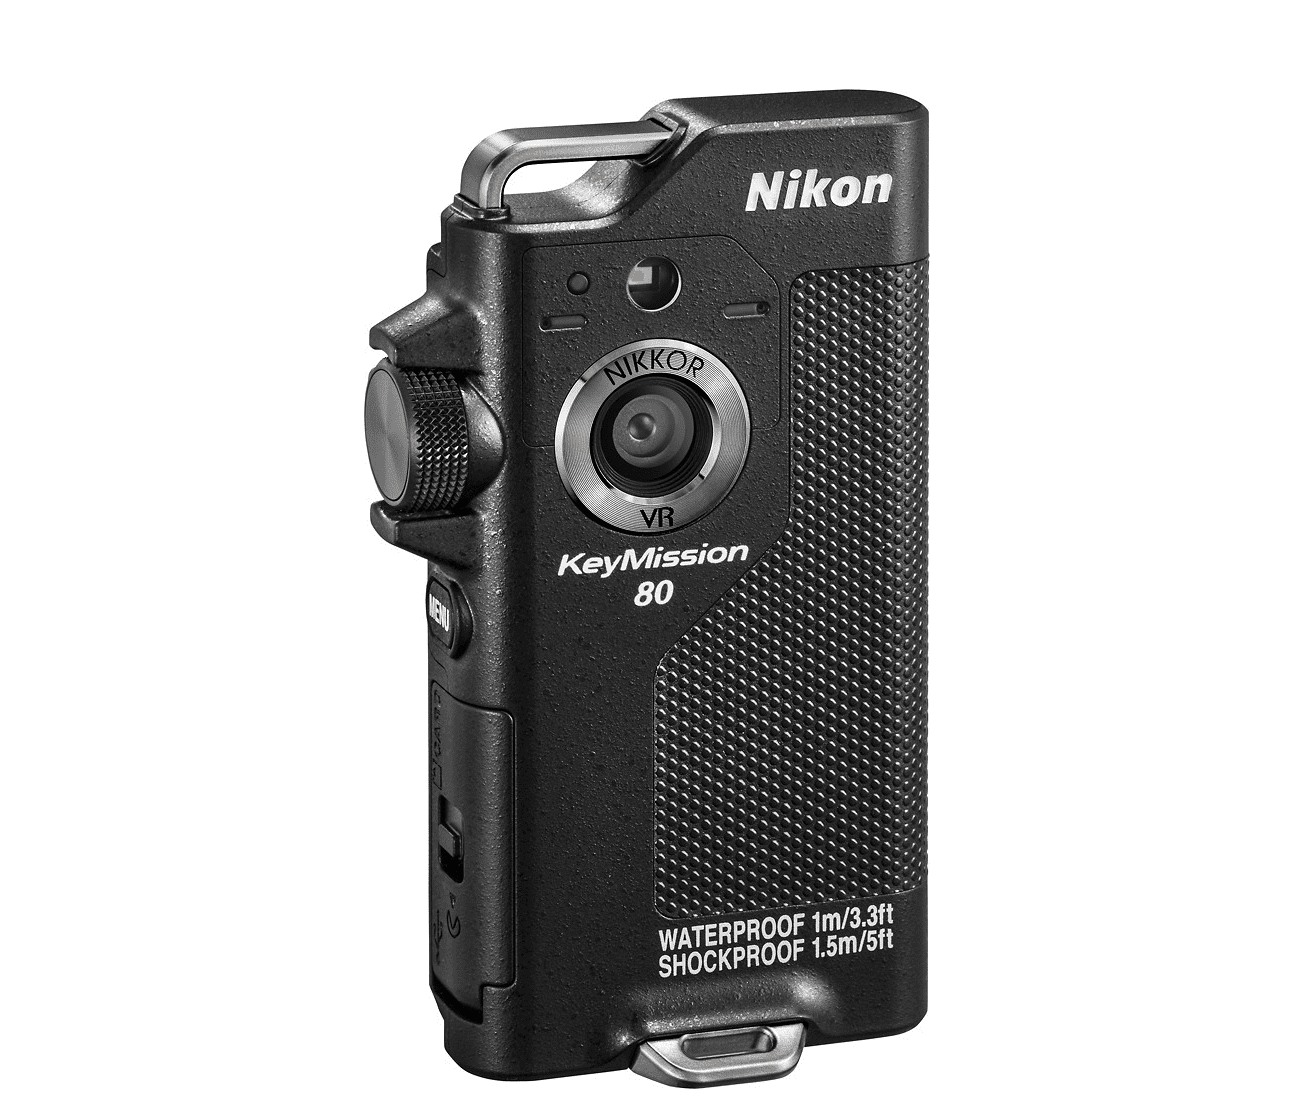 Best Compact Nikon Keymission 80hd Waterproof Action Camera